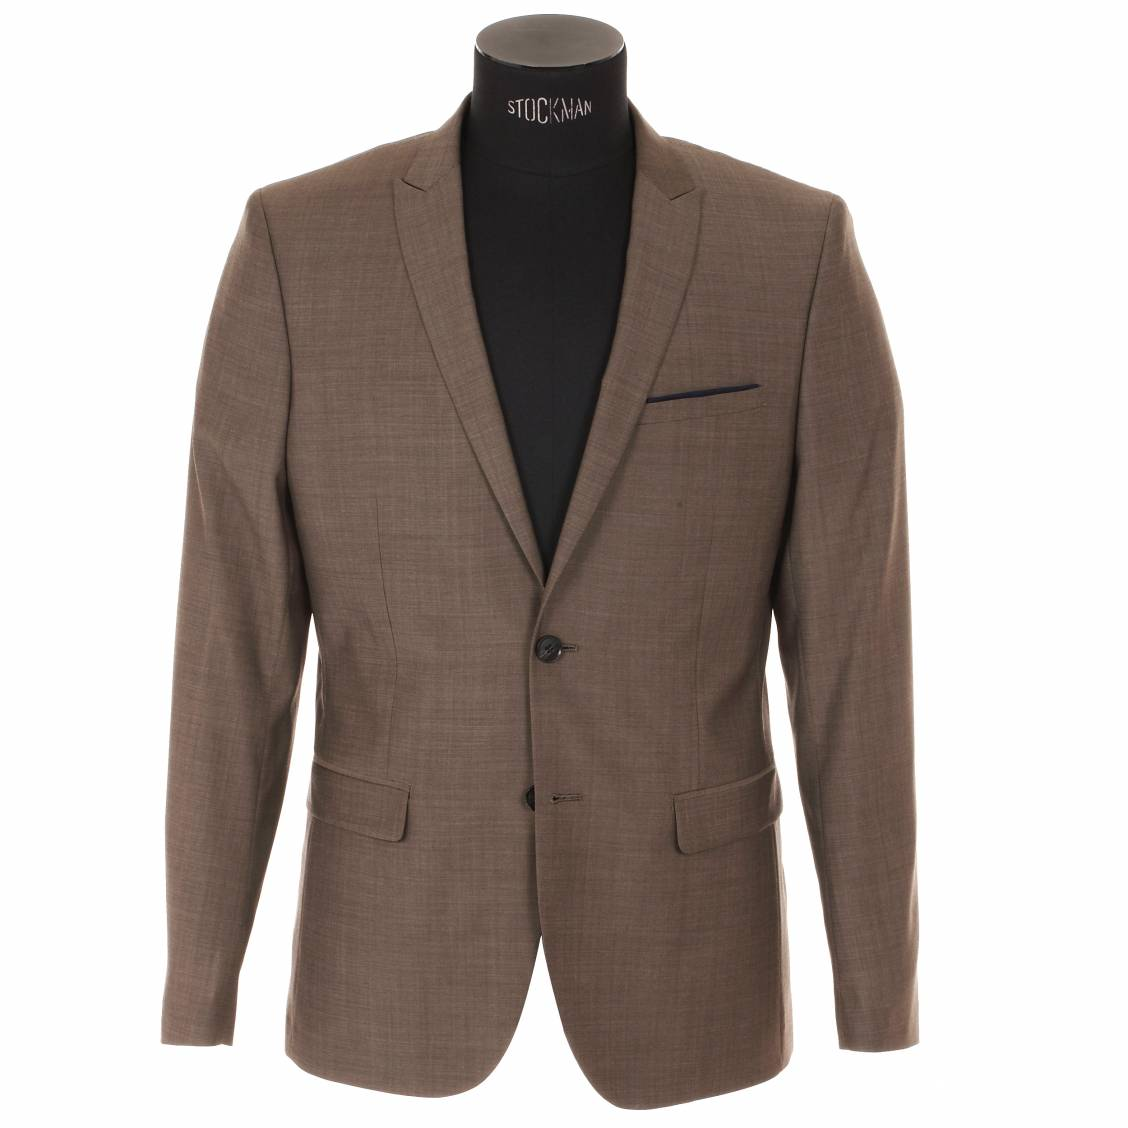 Find taupe blazer at Macy's Macy's Presents: The Edit - A curated mix of fashion and inspiration Check It Out Free Shipping with $99 purchase + Free Store Pickup.